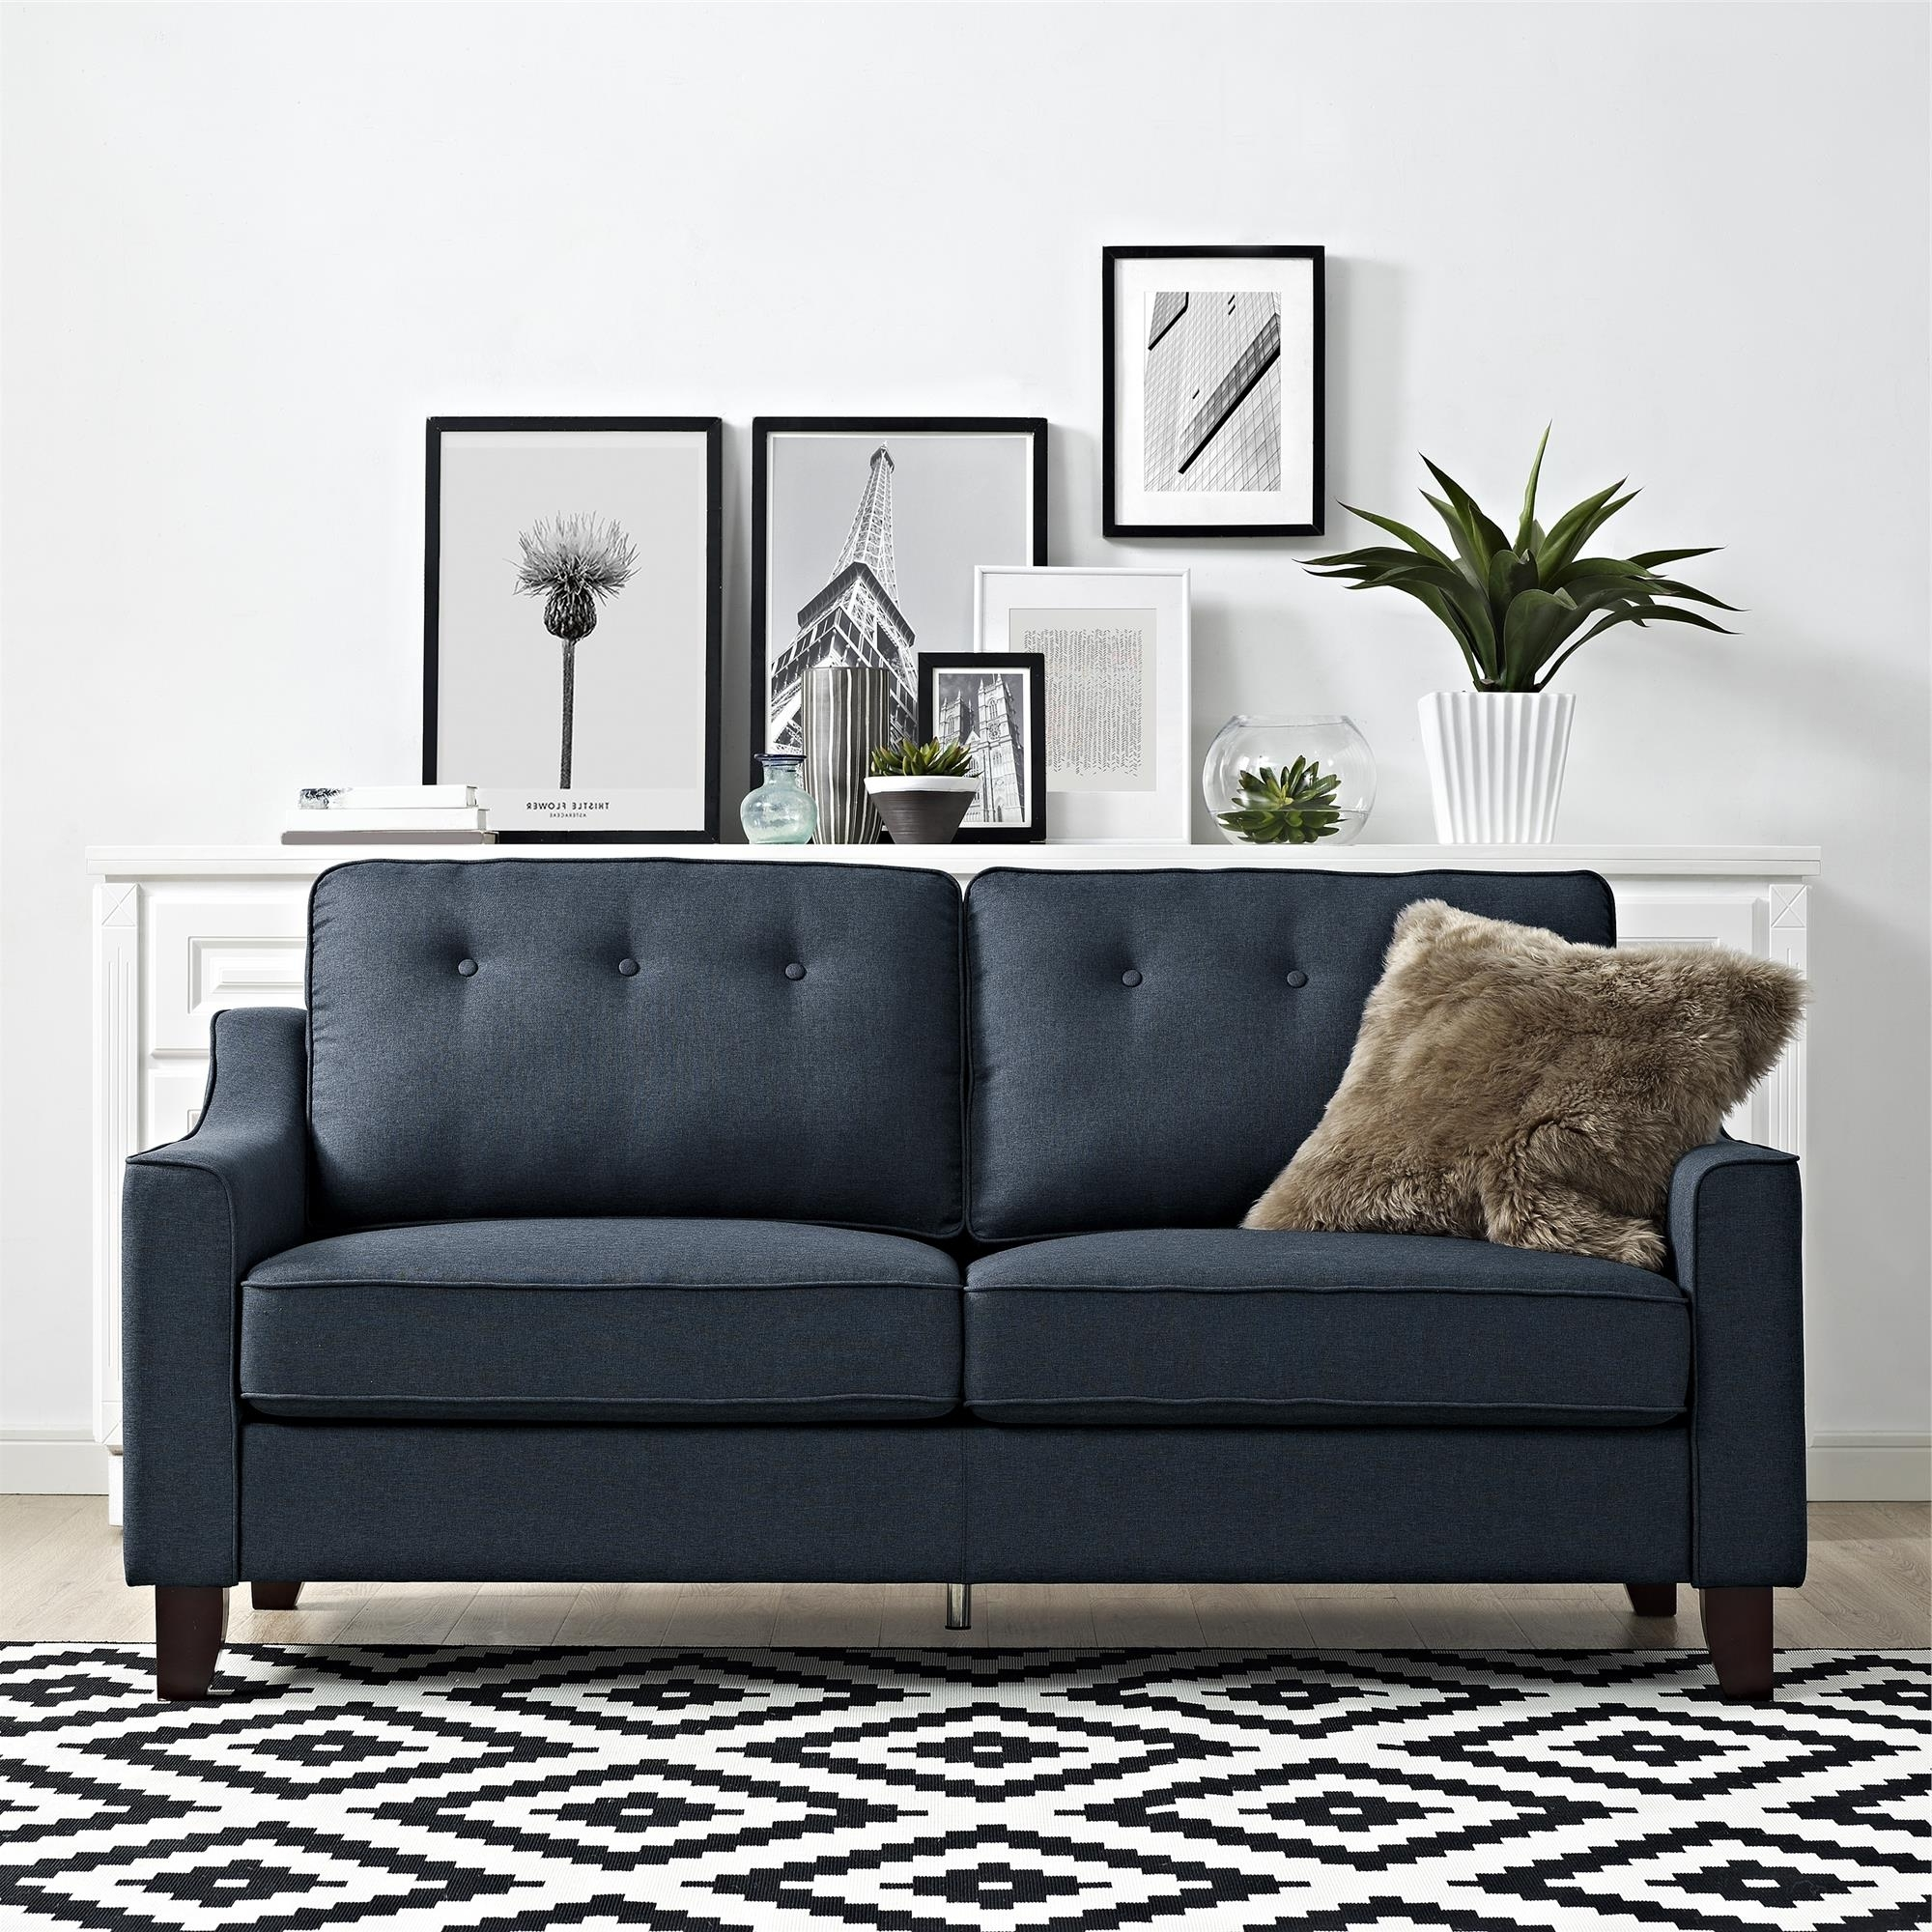 Best Sofas Australia Photo Gallery Of Kamloops Sectional Sofas Showing 15 Of 20 Photos